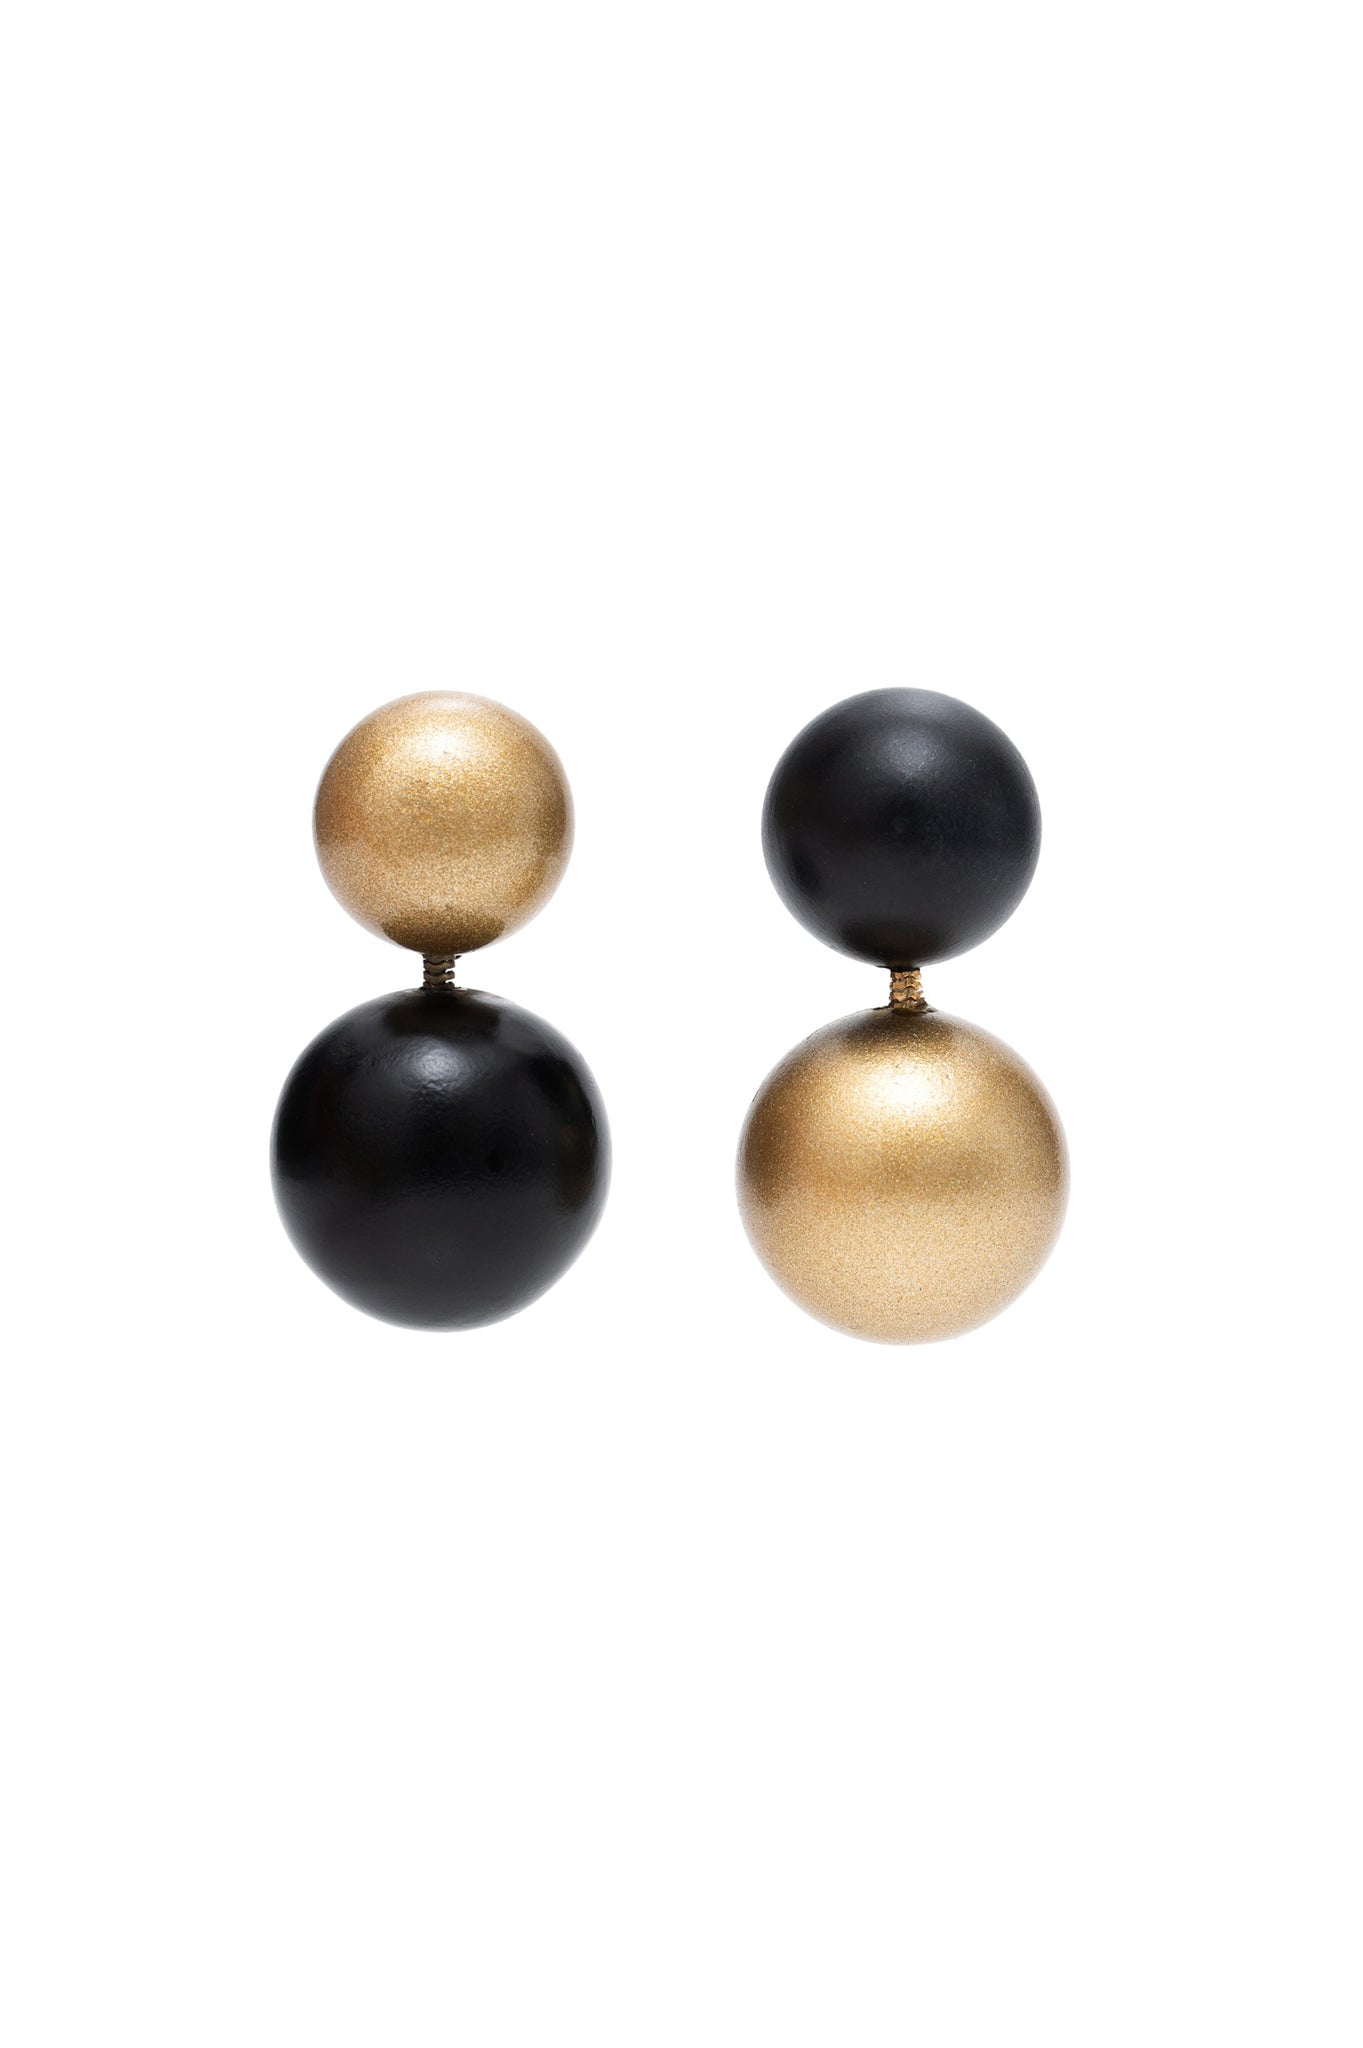 BLACK AND GOLD TWO WOODBALLS EARRINGS